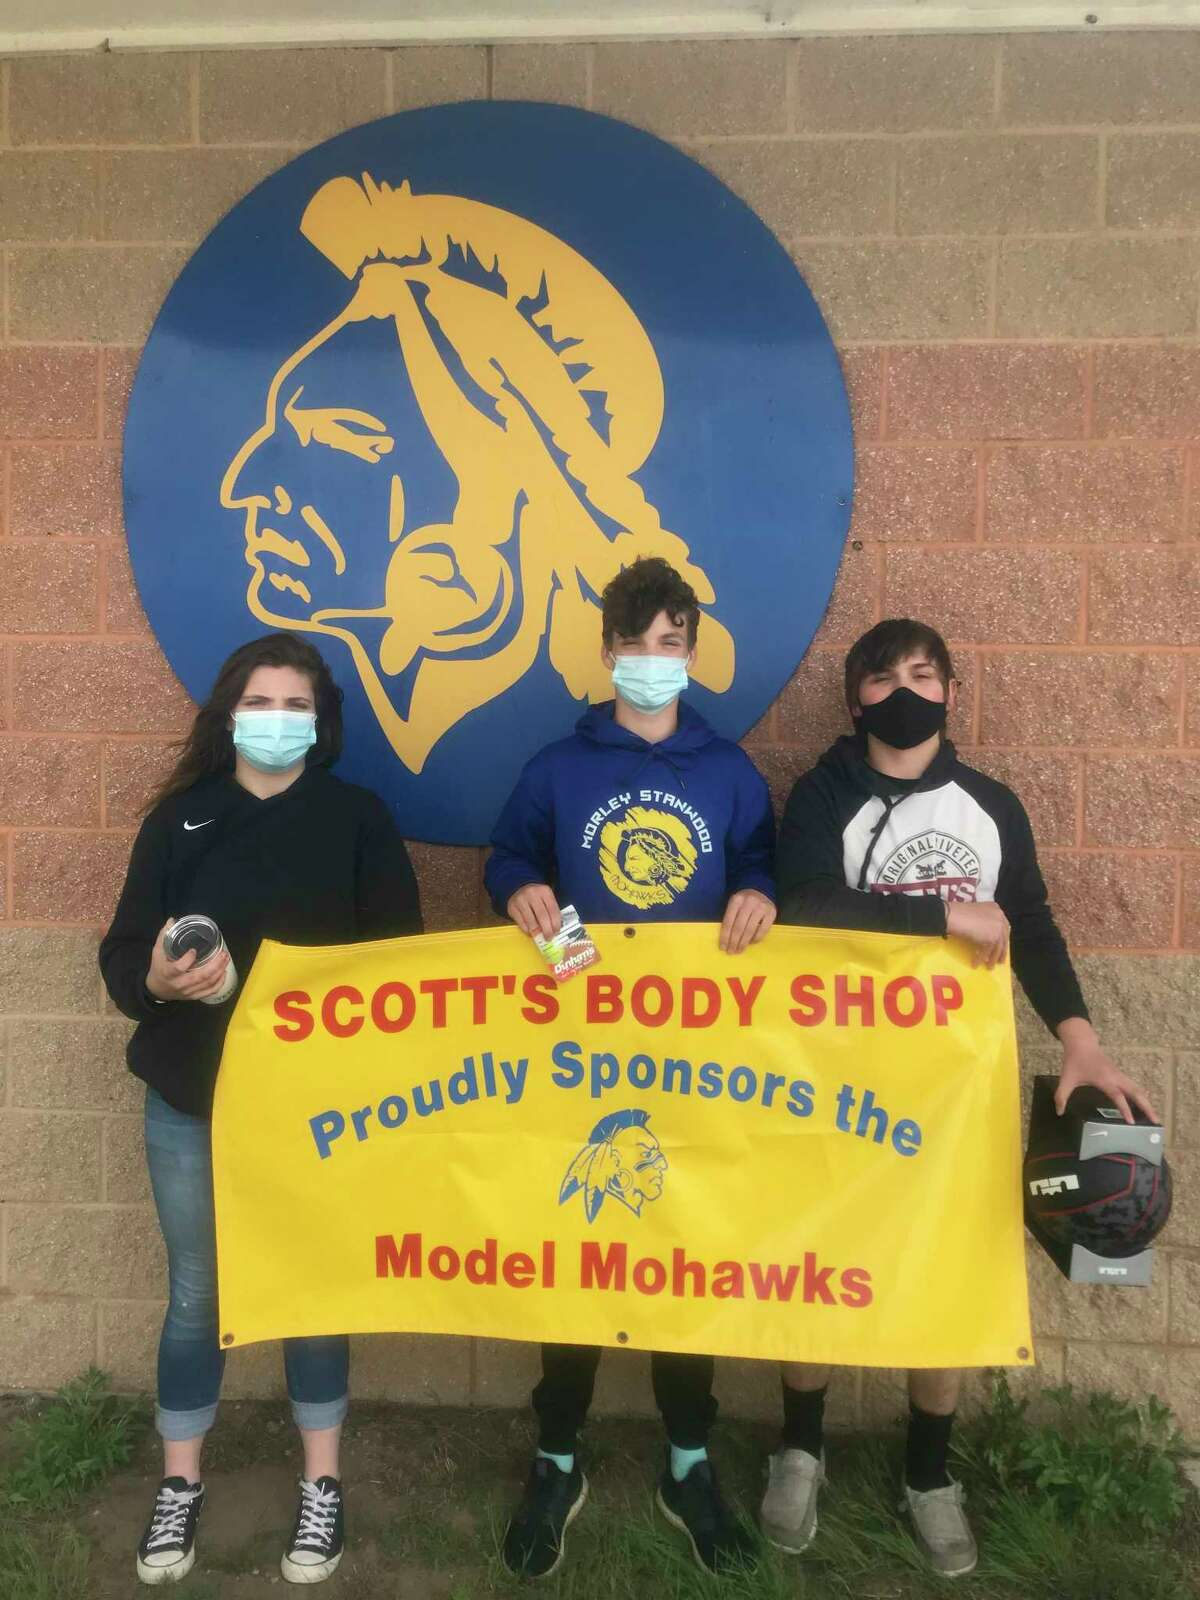 Morley Stanwood's April Model Mohawks, from left to right:Mallory Nickoles (sixth grade), Liam McLaughlin (seventh grade), and Kaden Whitehead (eighth grade).